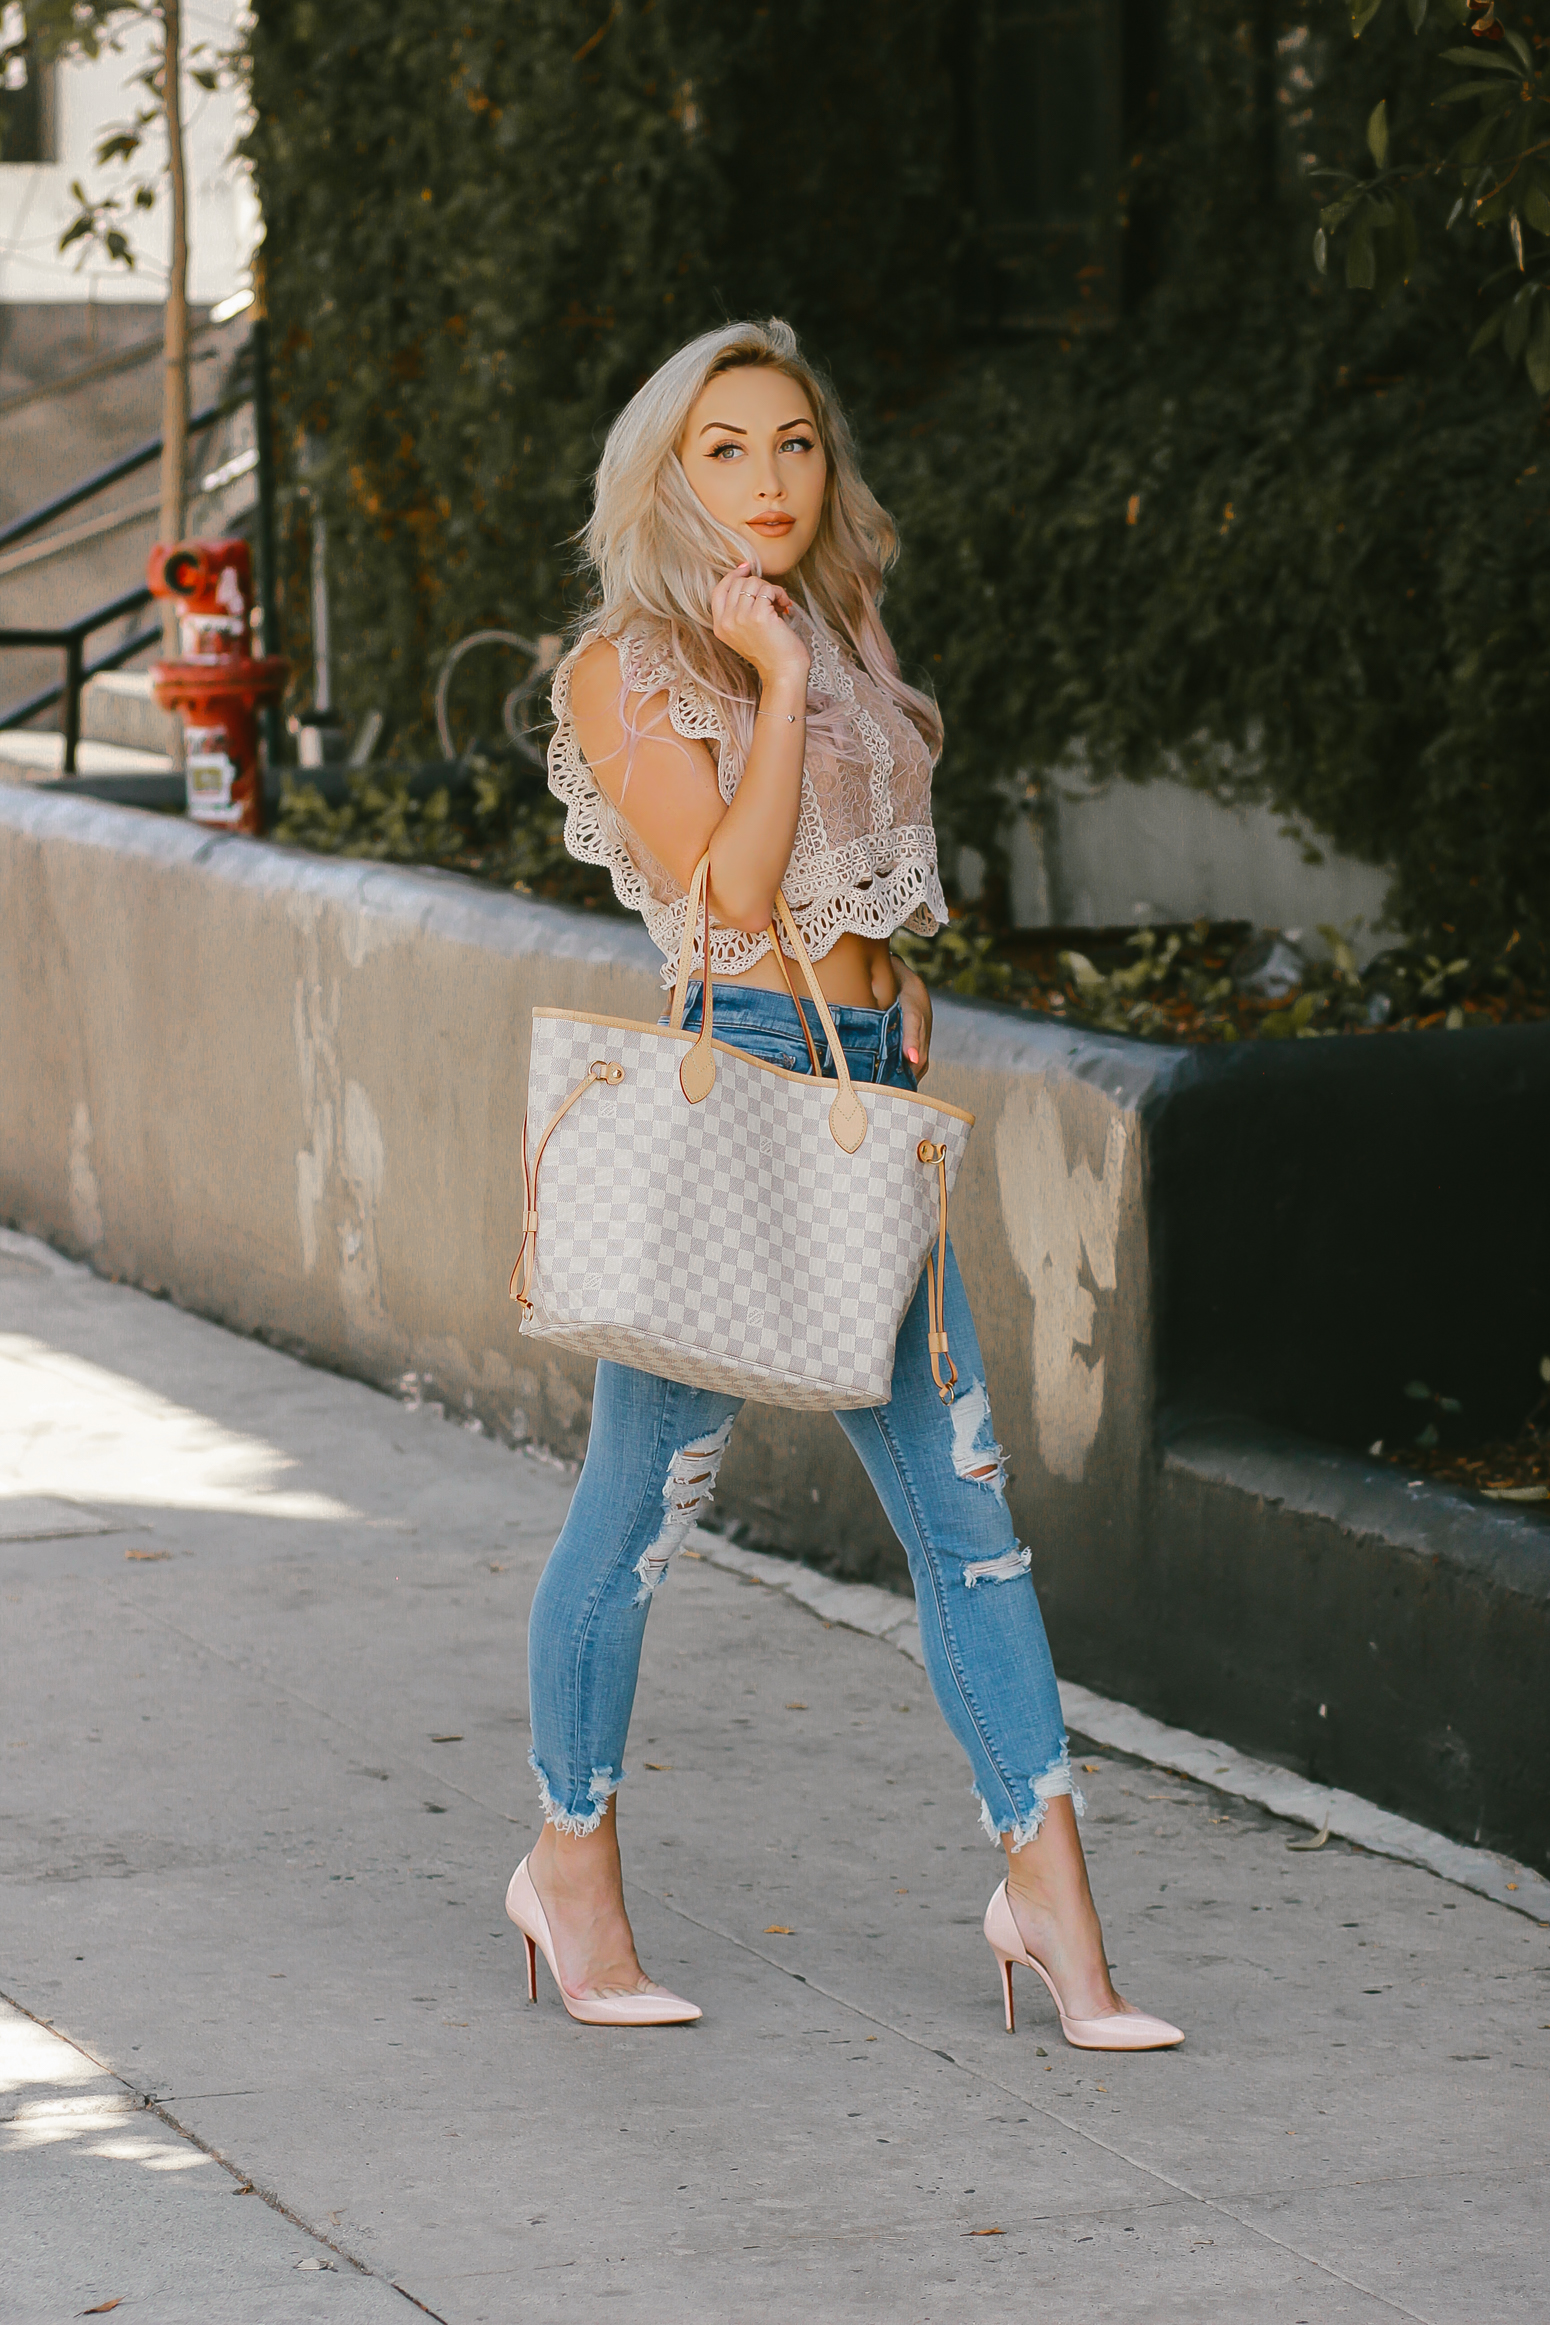 Blondie in the City |Distressed Jeans, Crochet & Lace Crop Top, Louis Vuitton Neverfull Bag